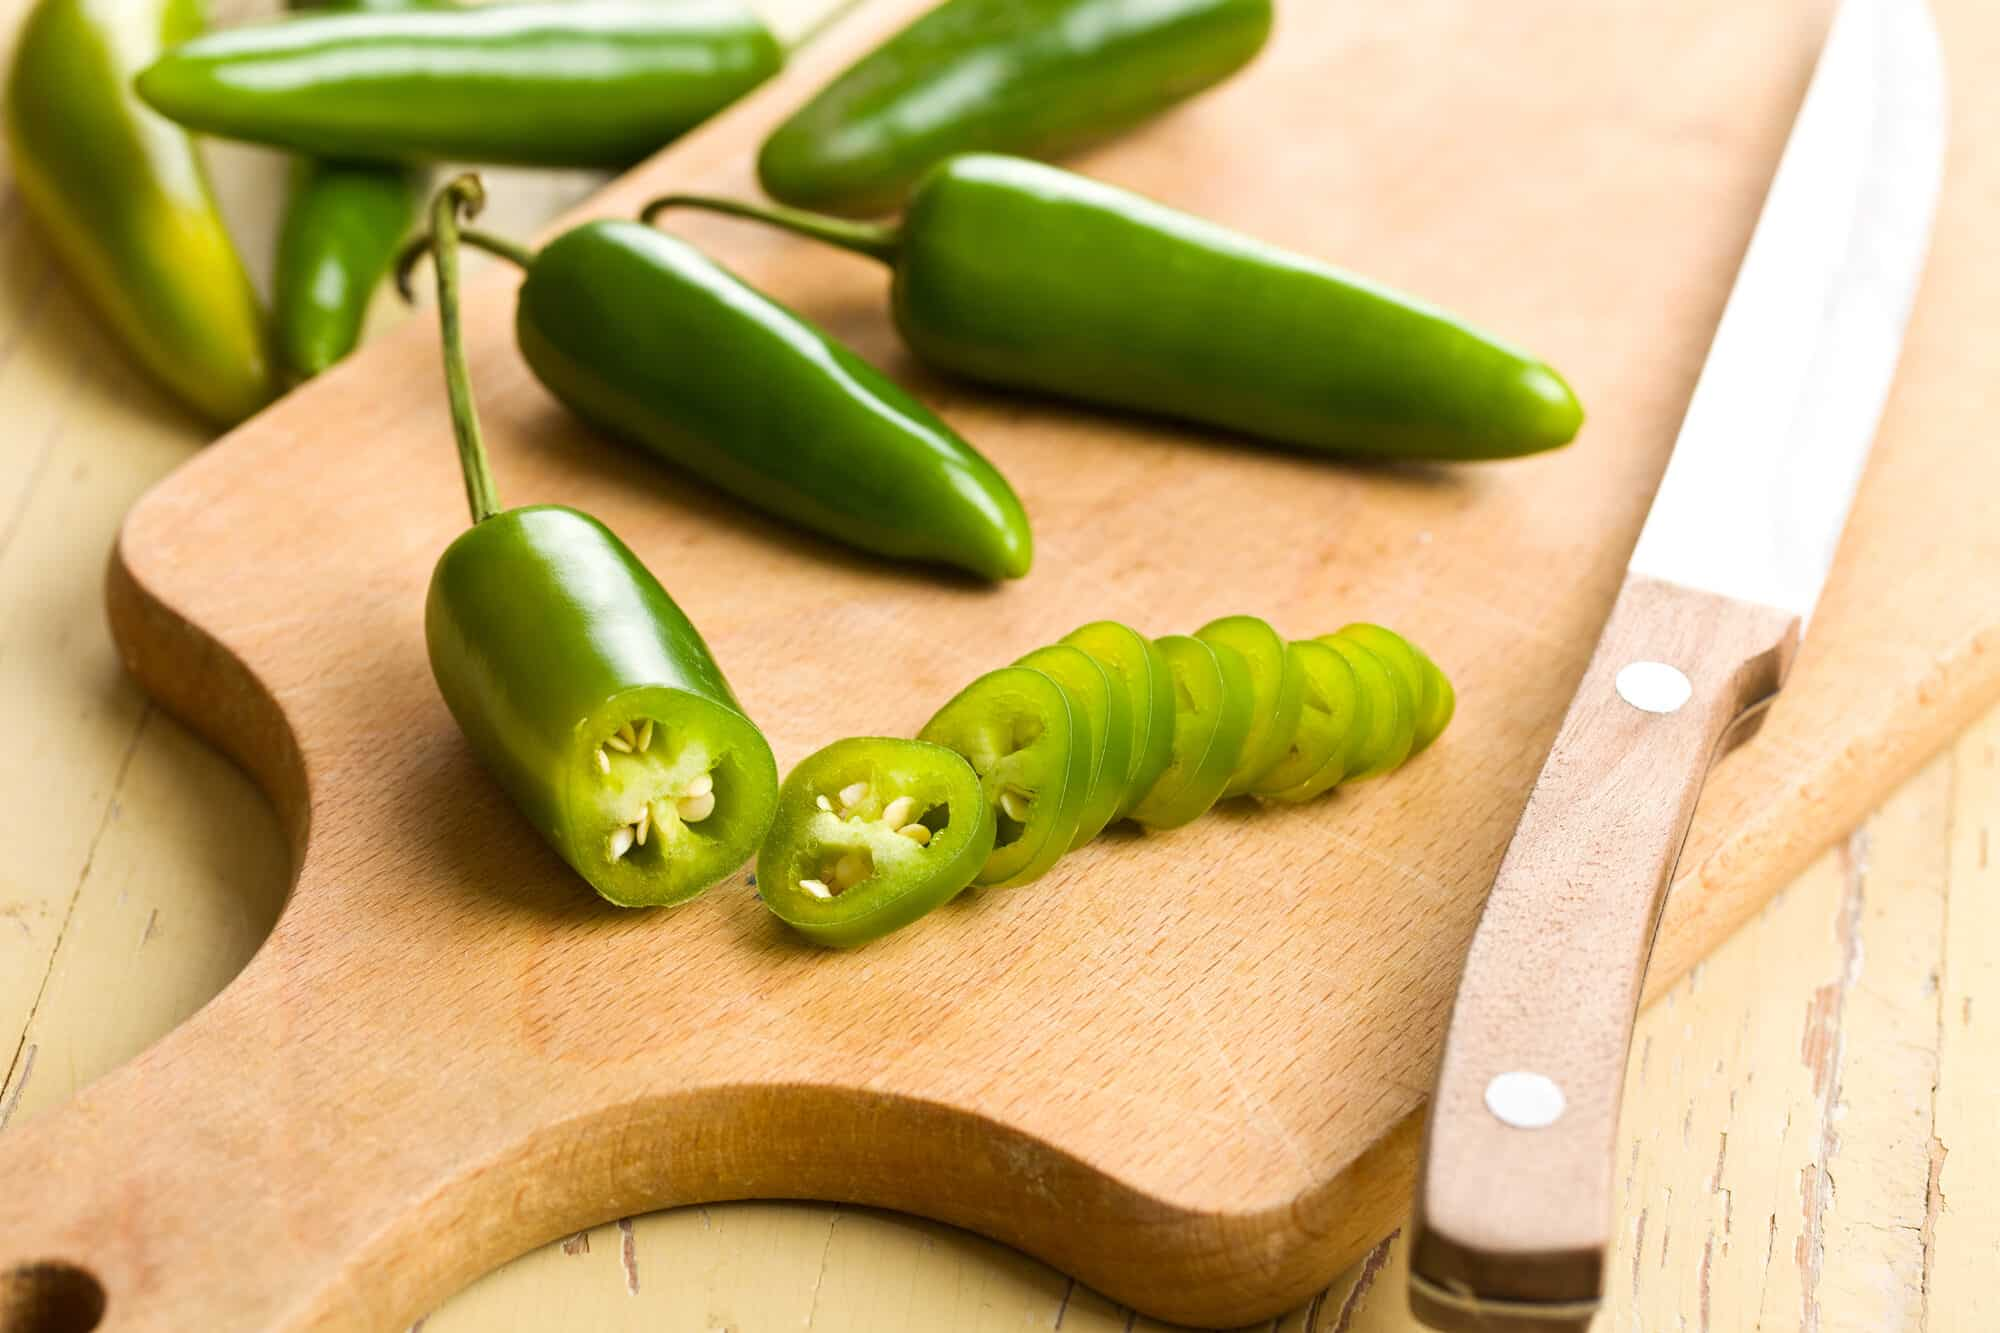 Cooking With Jalapeño Peppers: The Dos And Don'ts